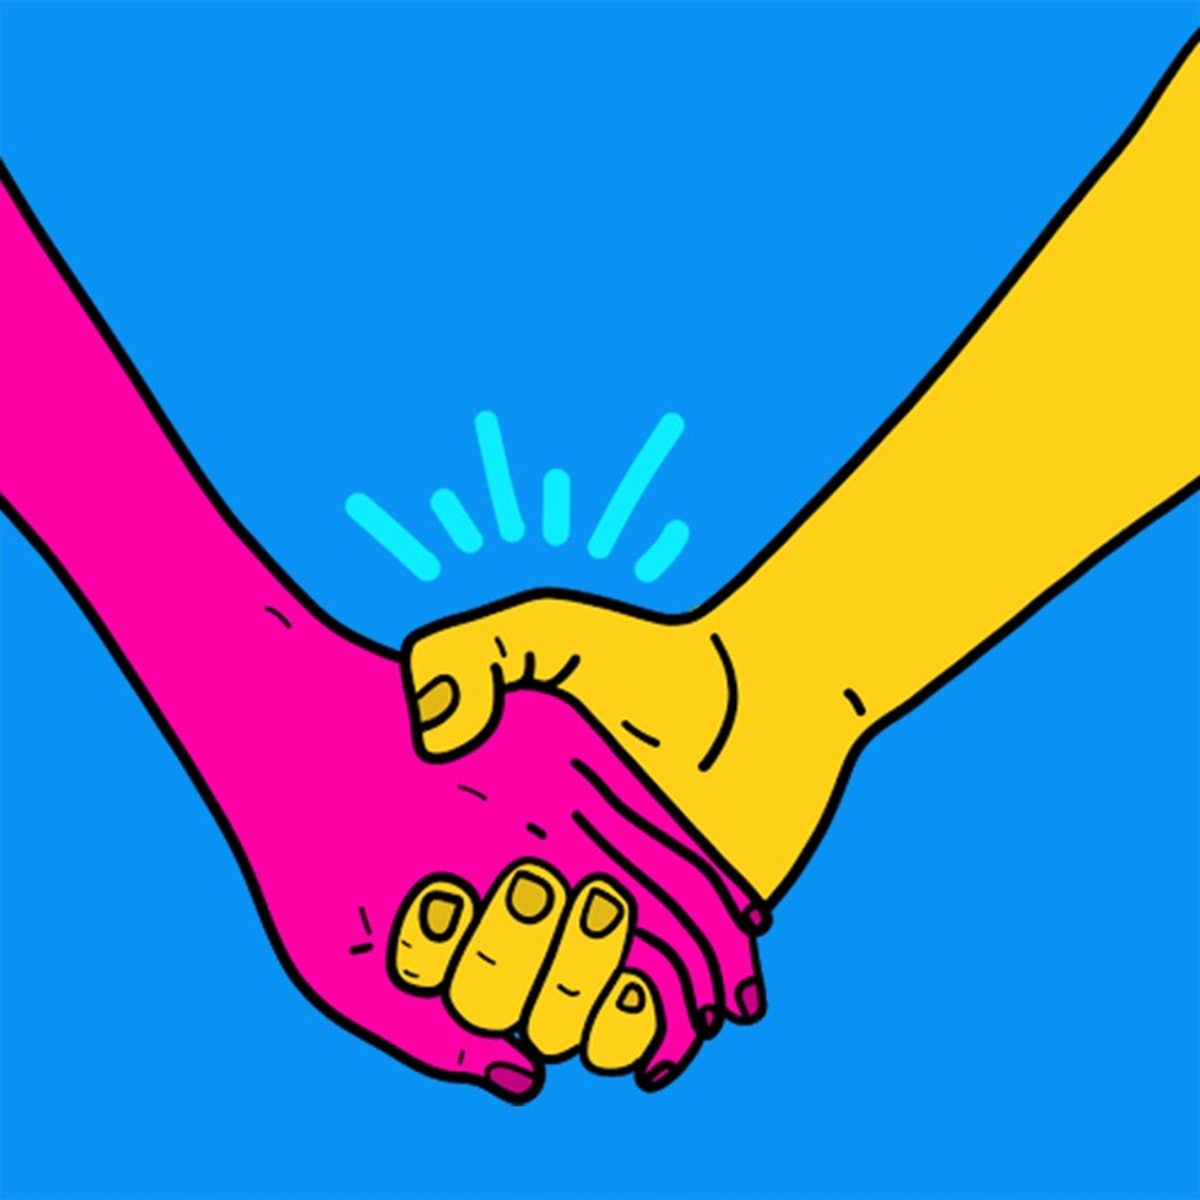 A firm grip when holding hands can be a little possessive.